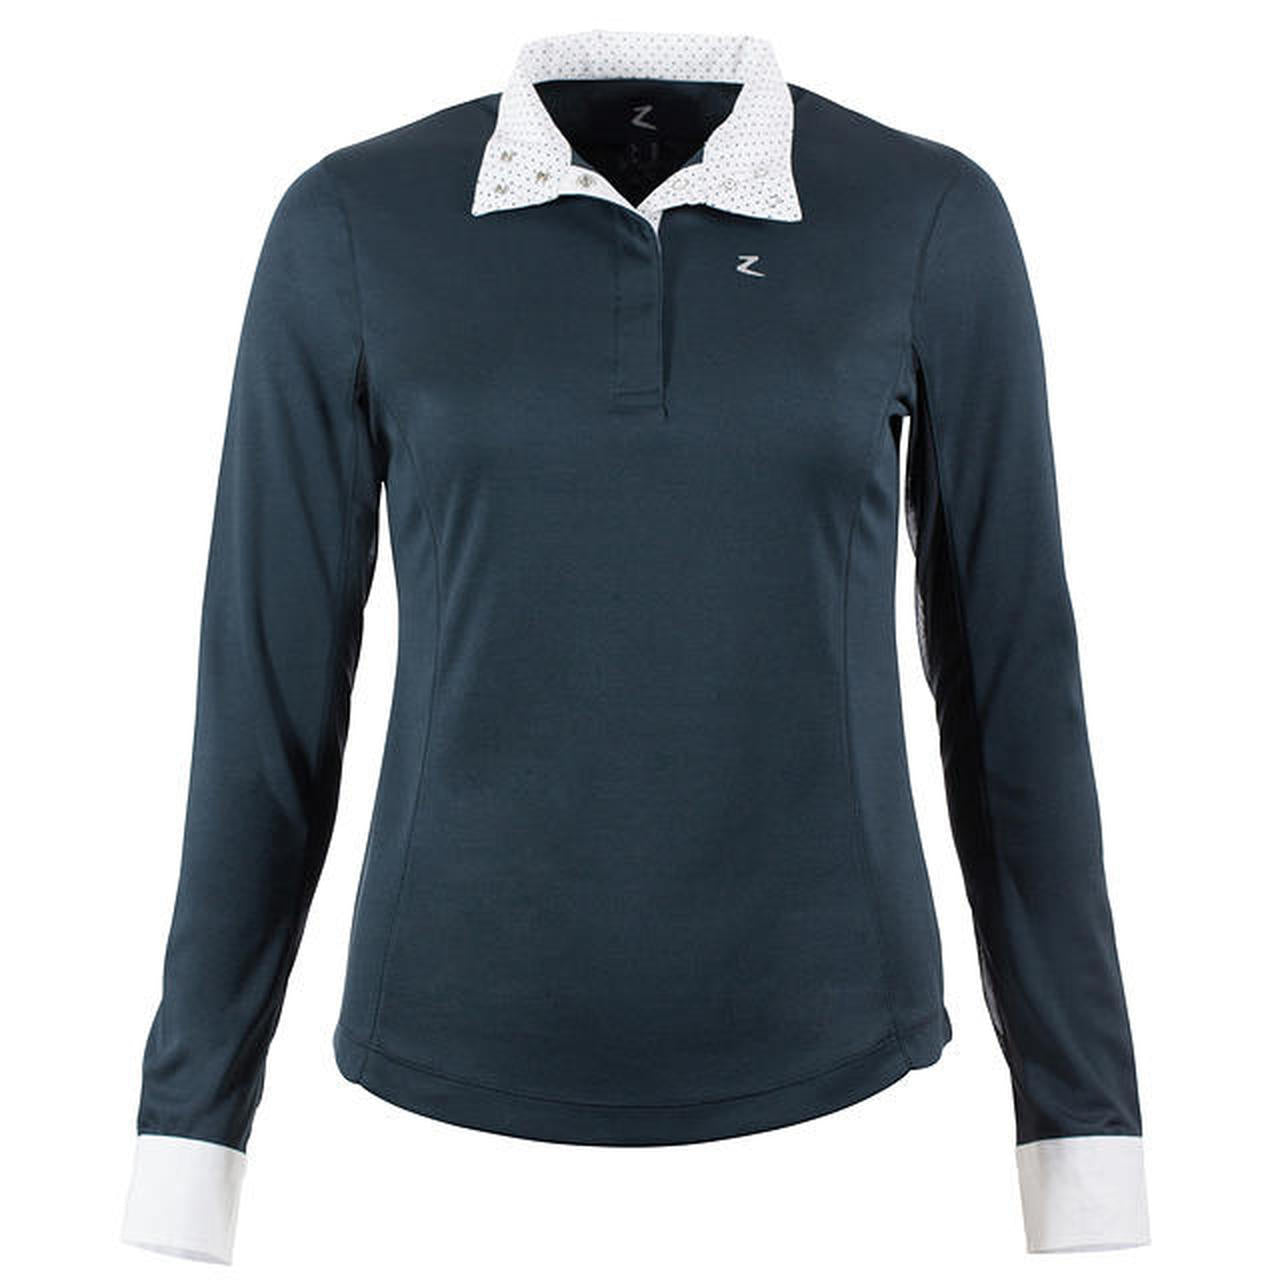 Photo of Horze Blaire Women's LS Show Shirt in Navy Blue